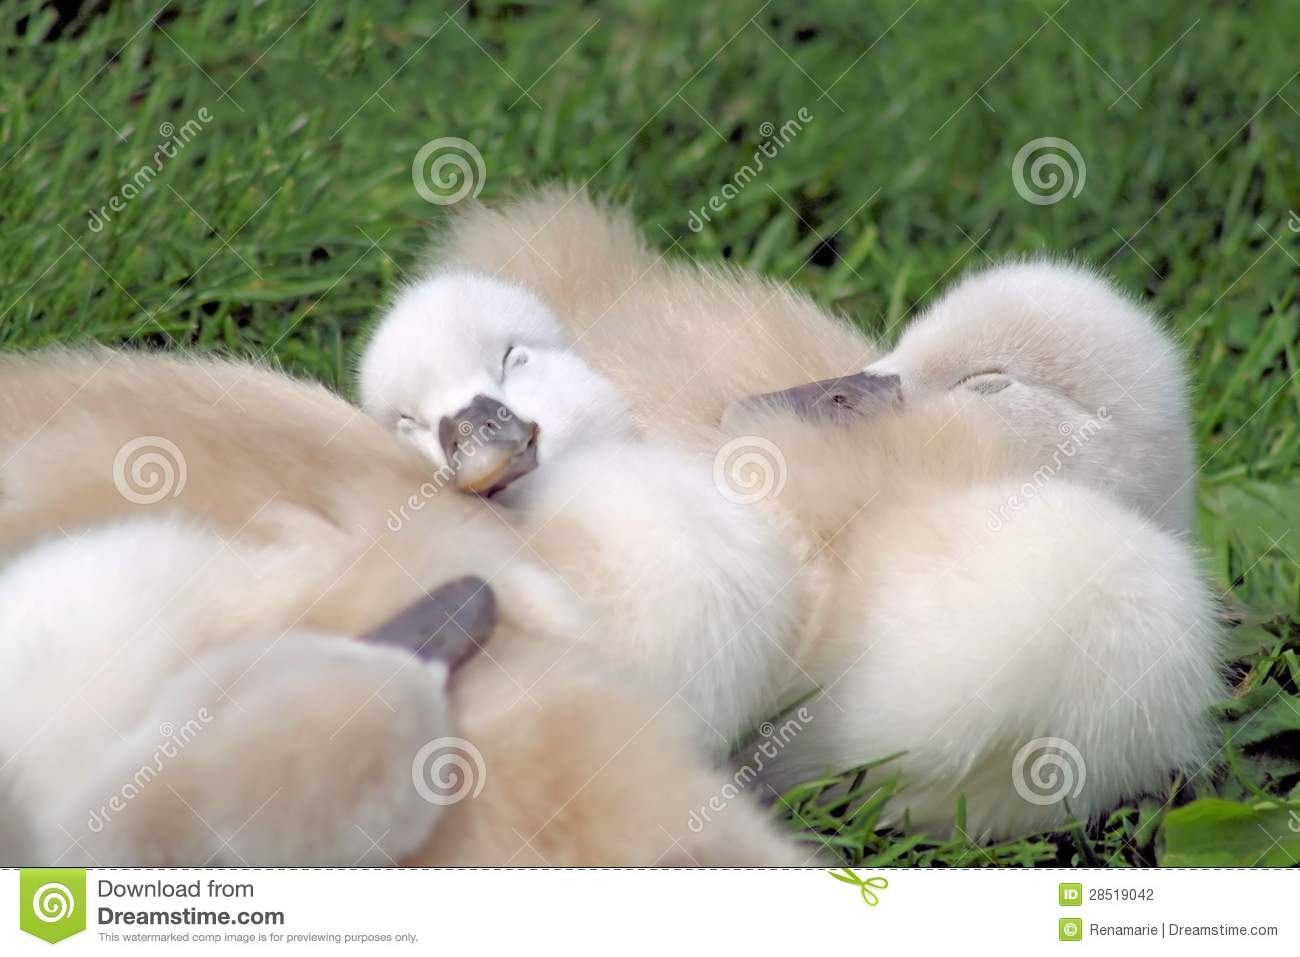 The Sleeping Swans >> Baby Swans Sleeping stock photo. Image of cute, cuddly - 28519042